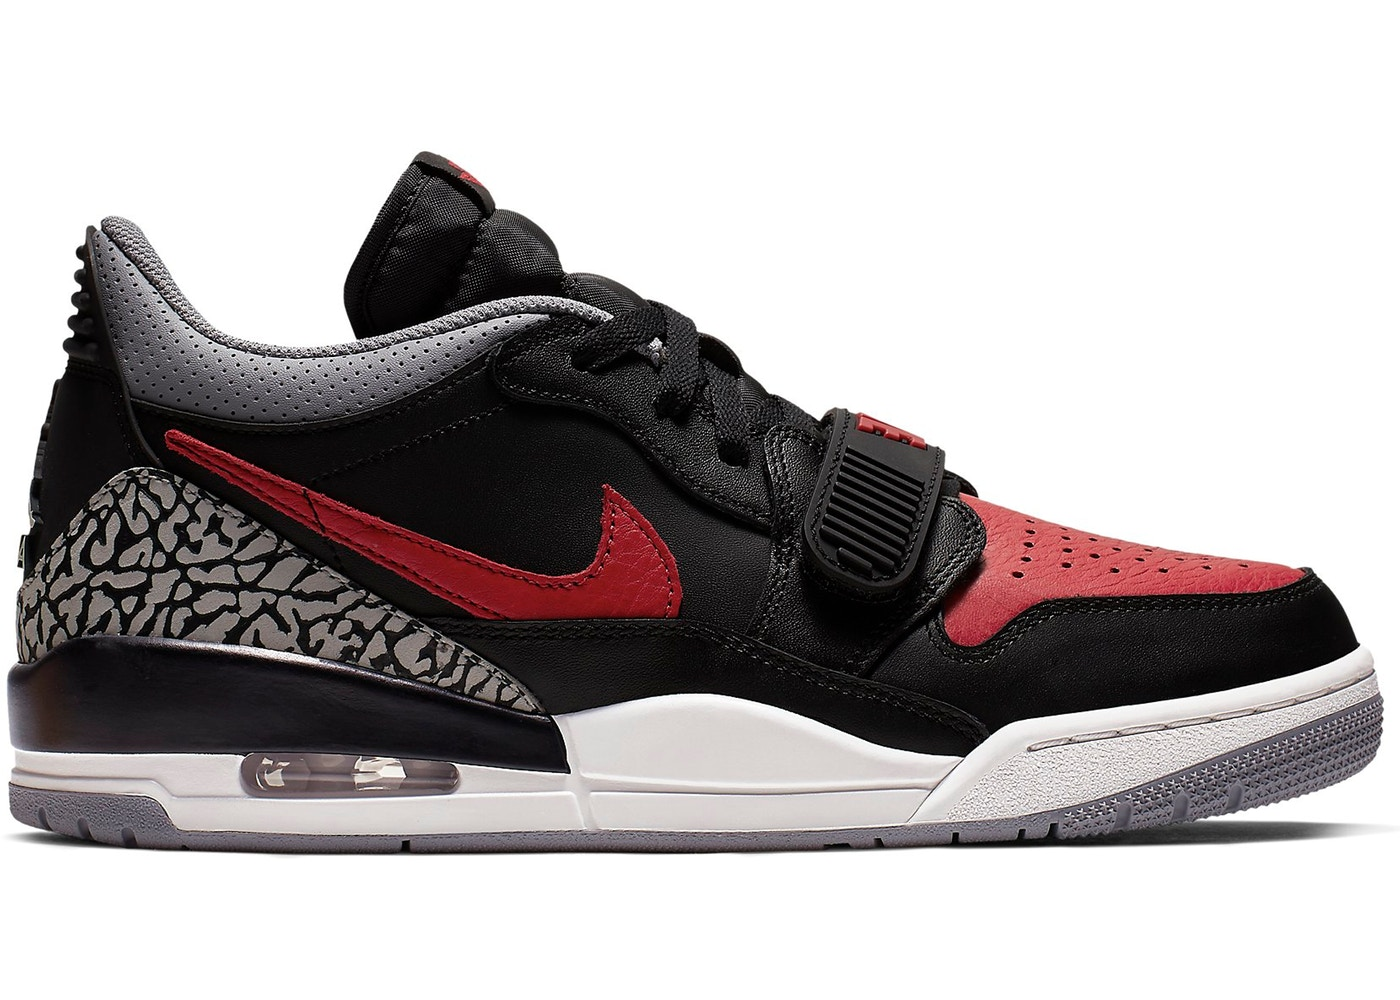 finest selection 0055a 0d140 StockX Buy and Sell Sneakers, Streetwear, Handbags, Watches